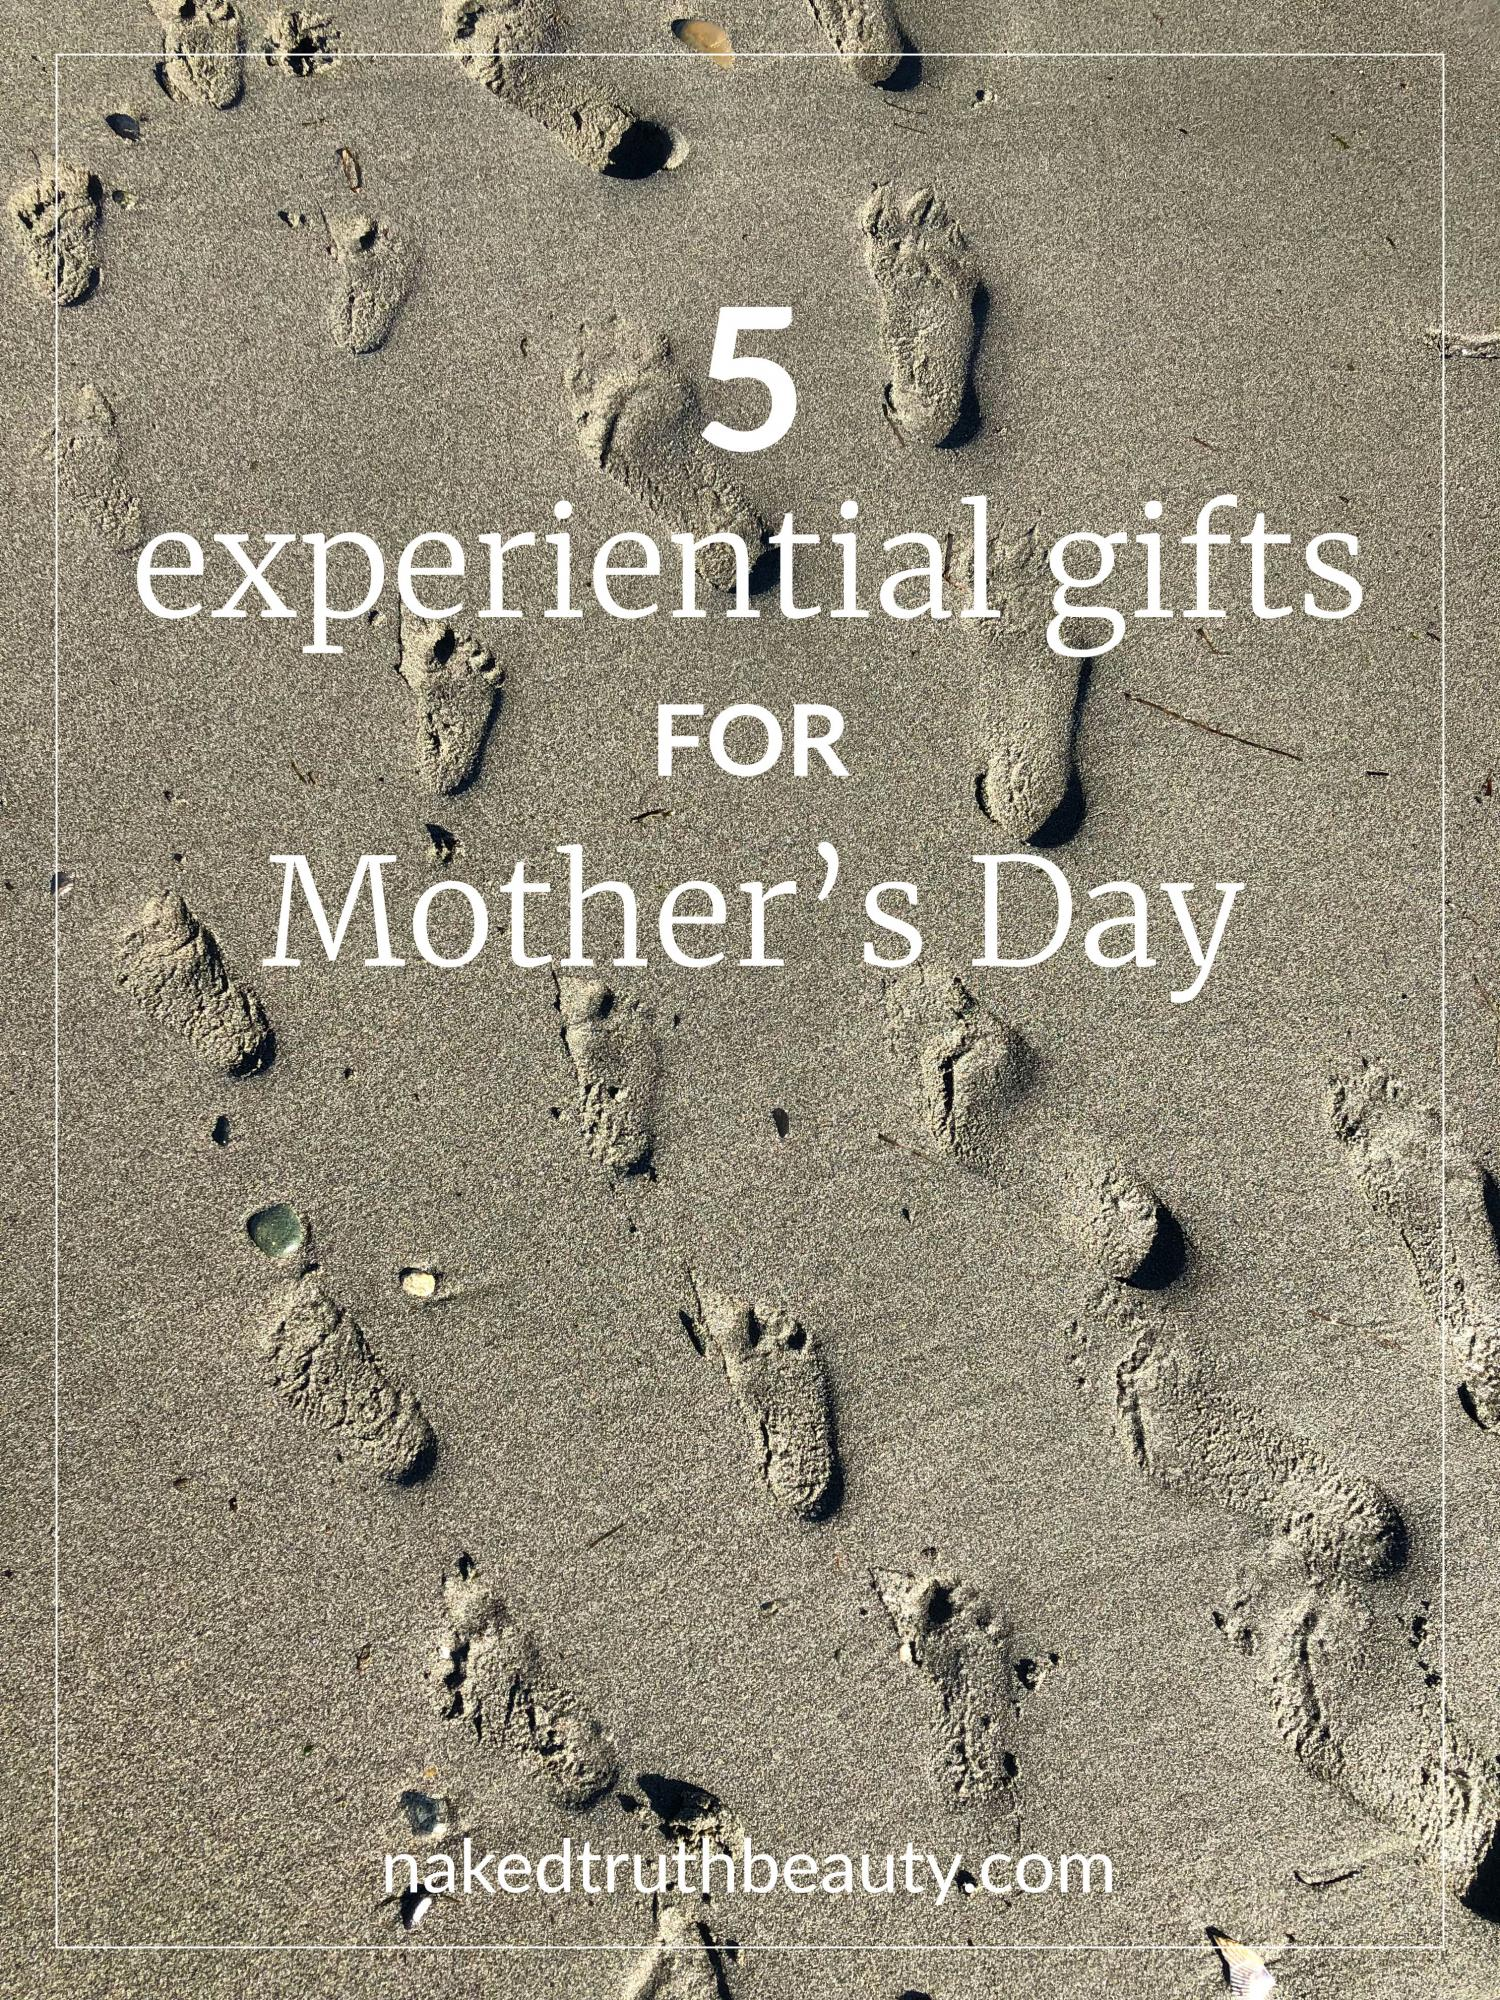 5 experiential gifts for mother's day